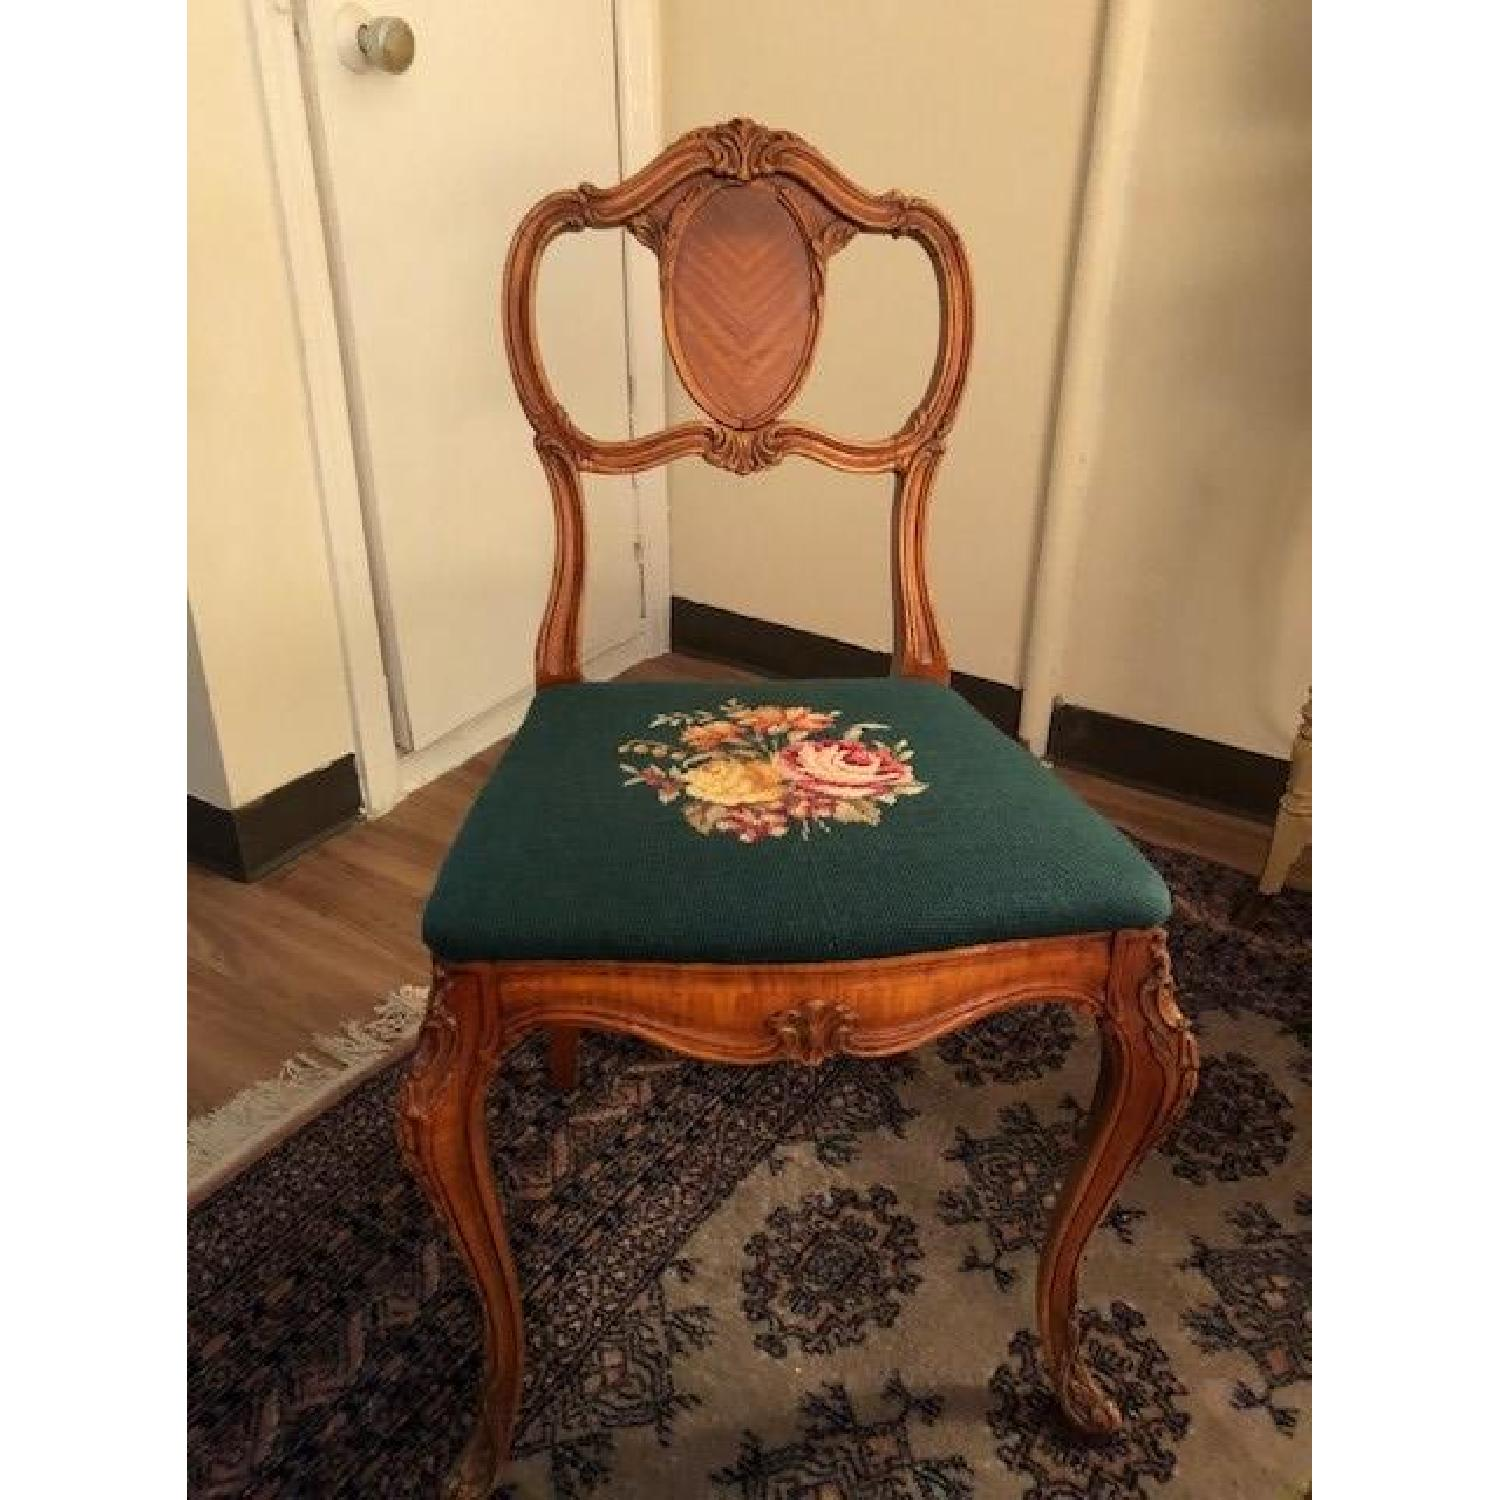 Victorian-Era American Ornate Accent Chair